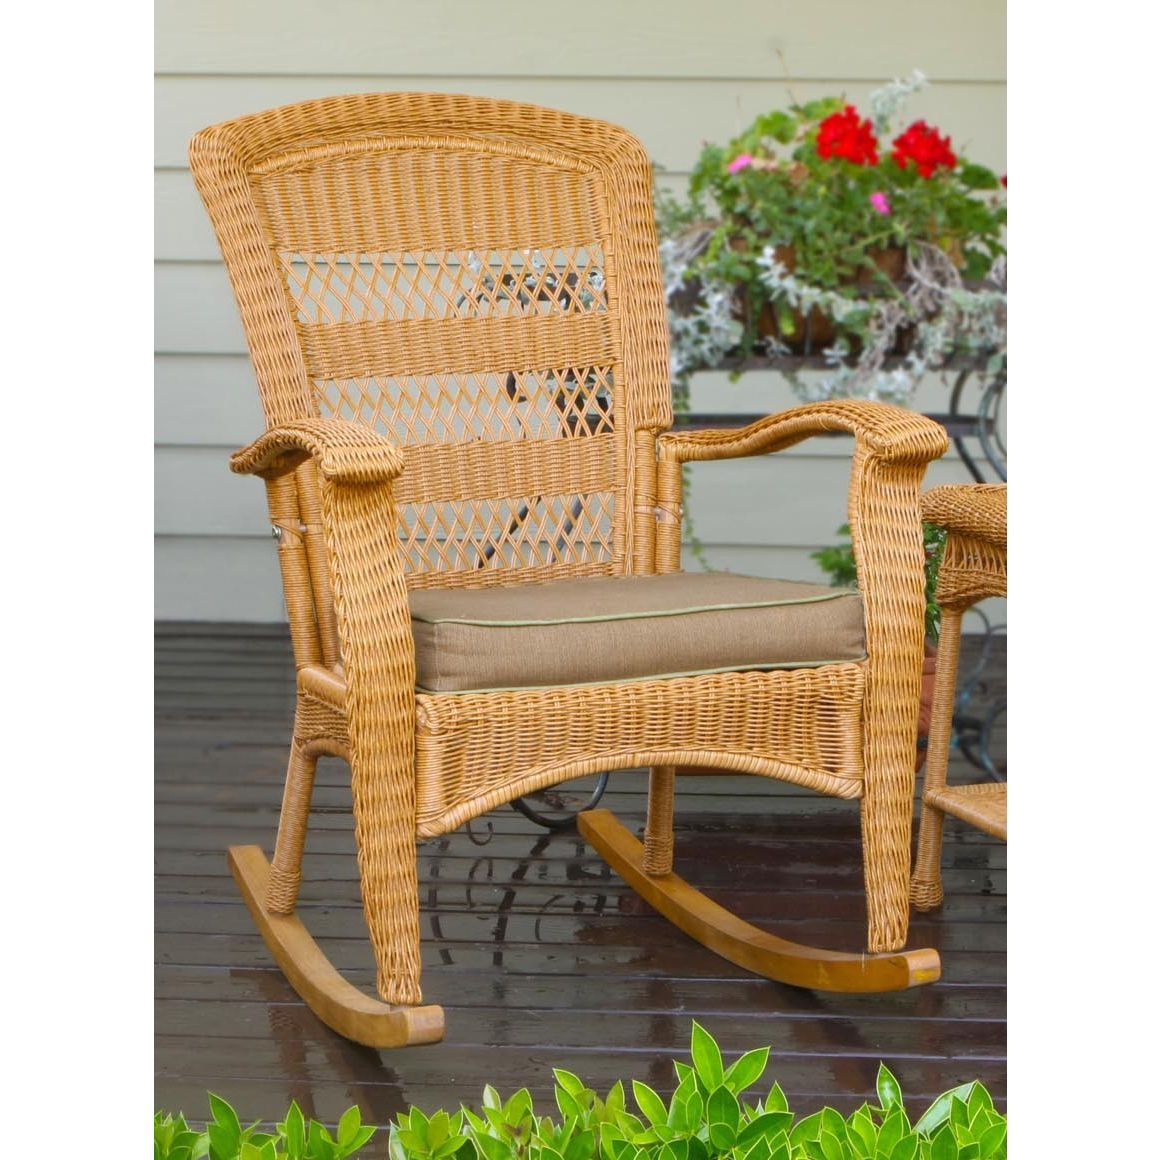 The Portside Plantation Rocking Chair Is The Perfect